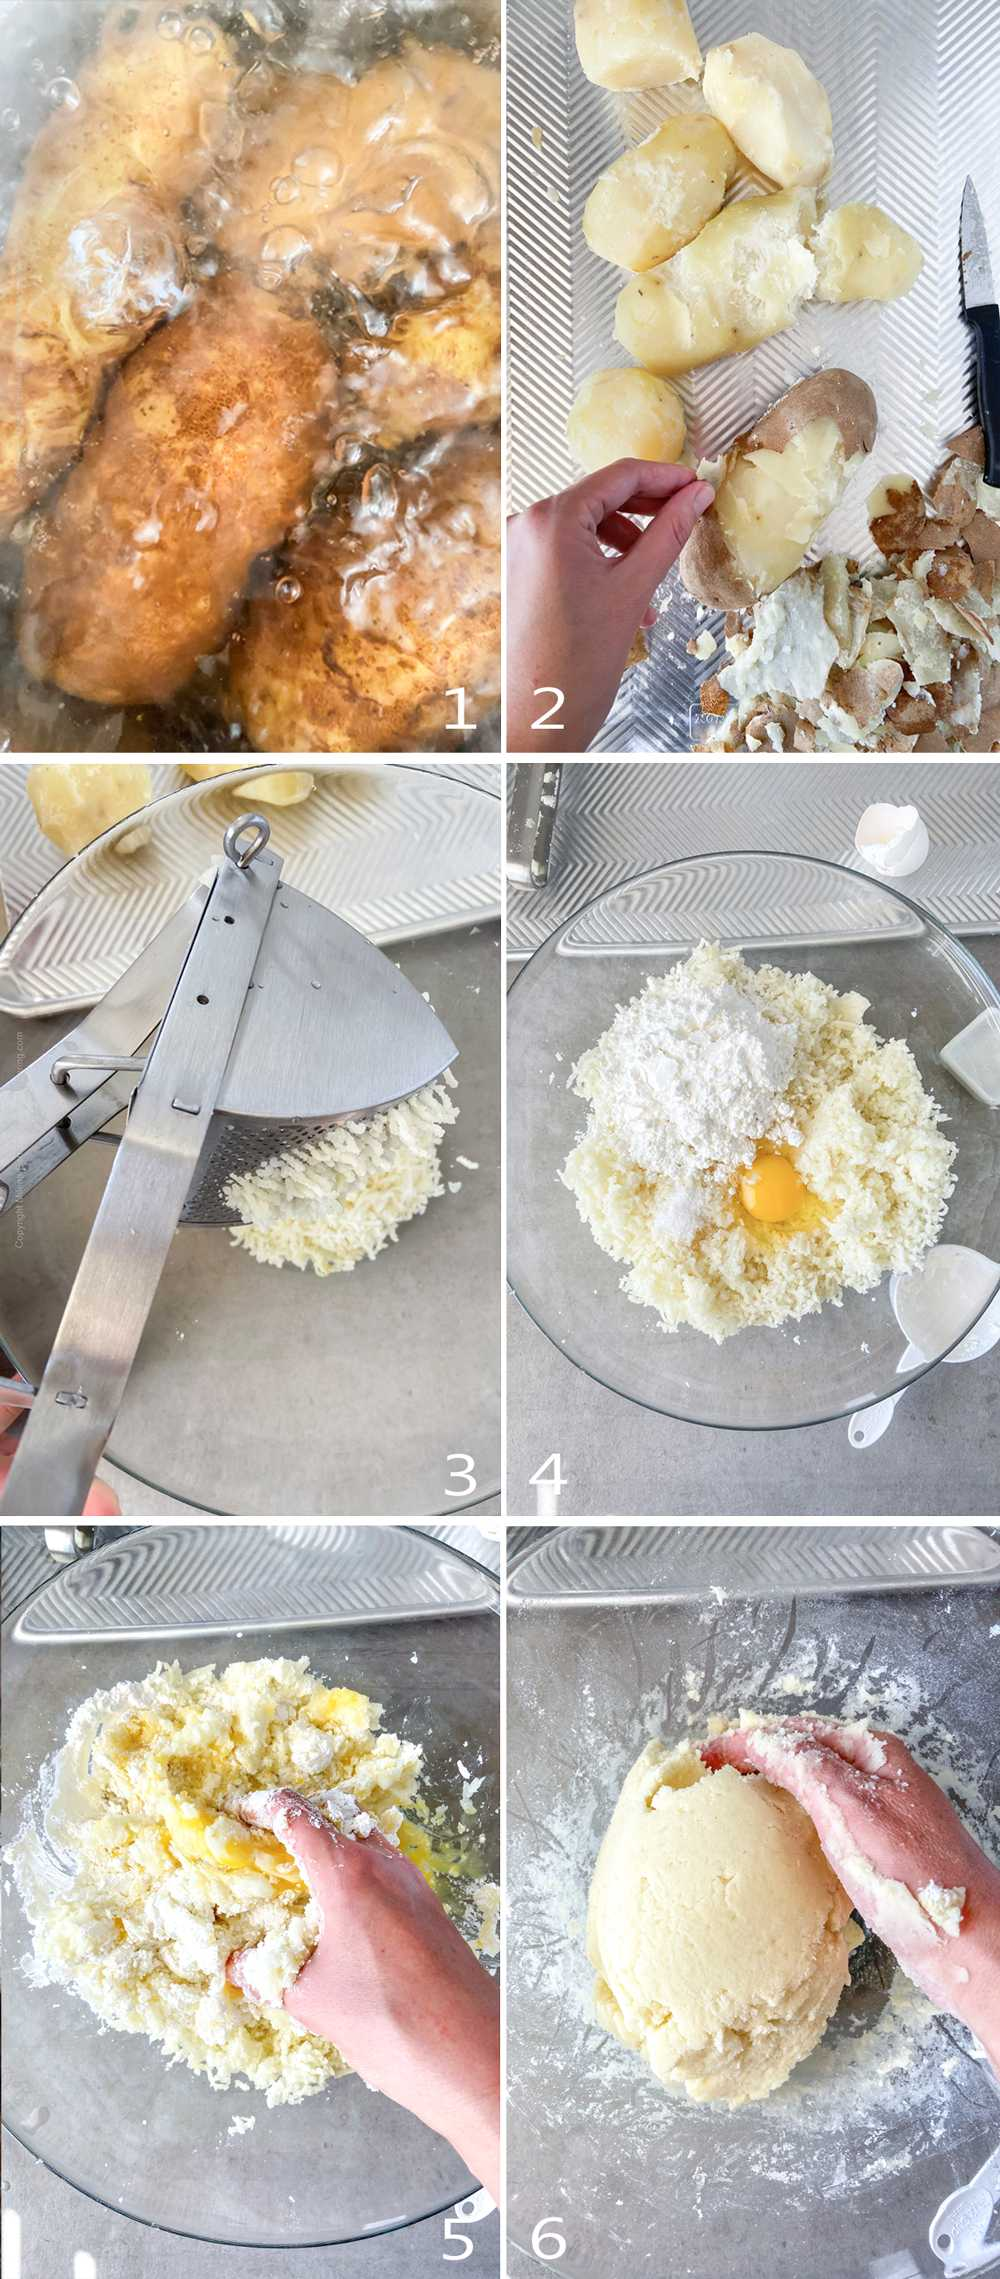 How to make potato dumplings - step by step image collage part 1